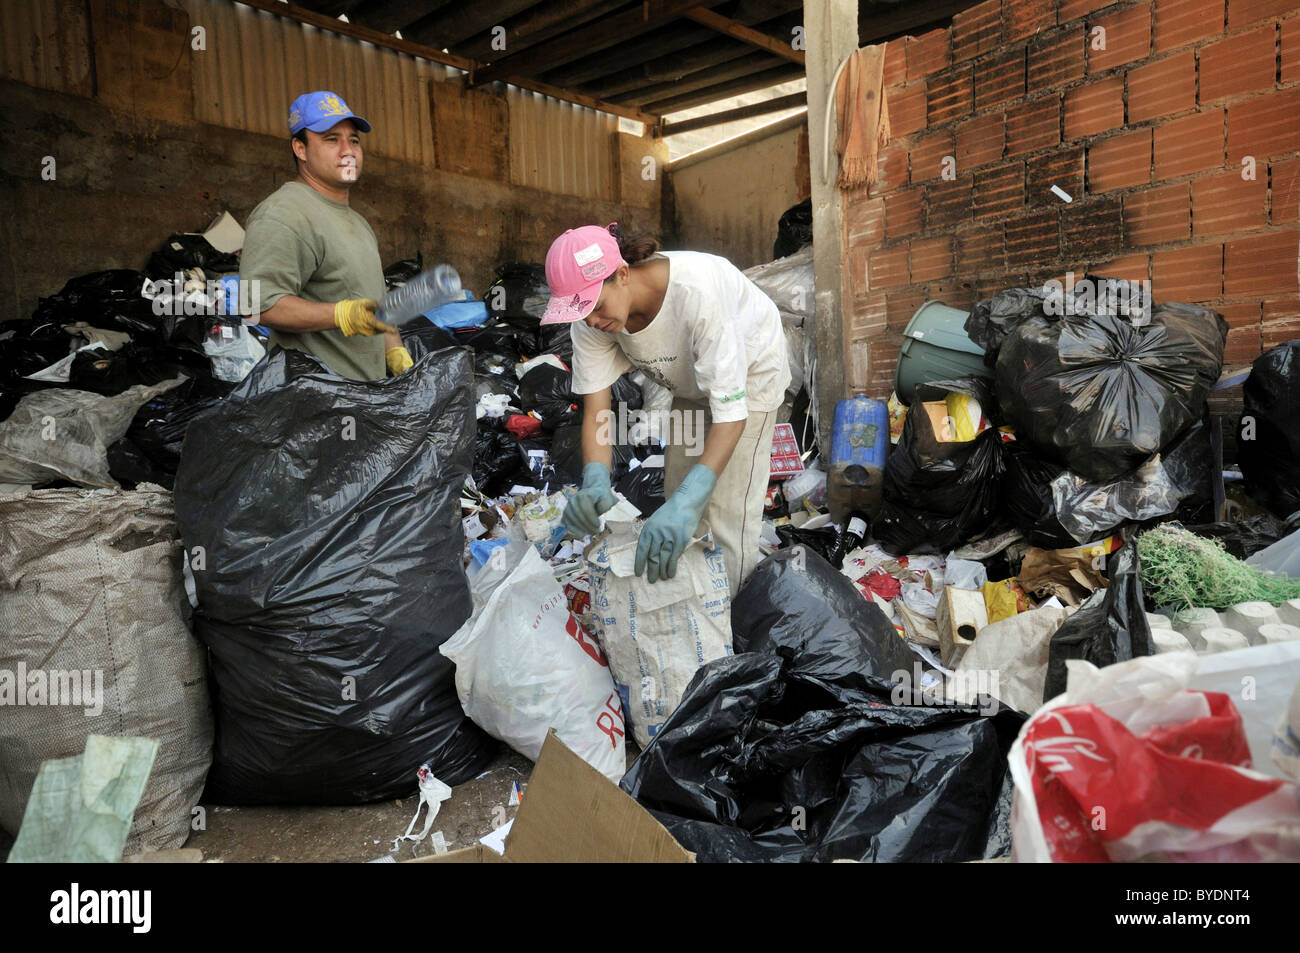 Separation of recyclables from waste in a recycling factory, social project for ex-prisoners 'Reintegar Reciclando' - Stock Image